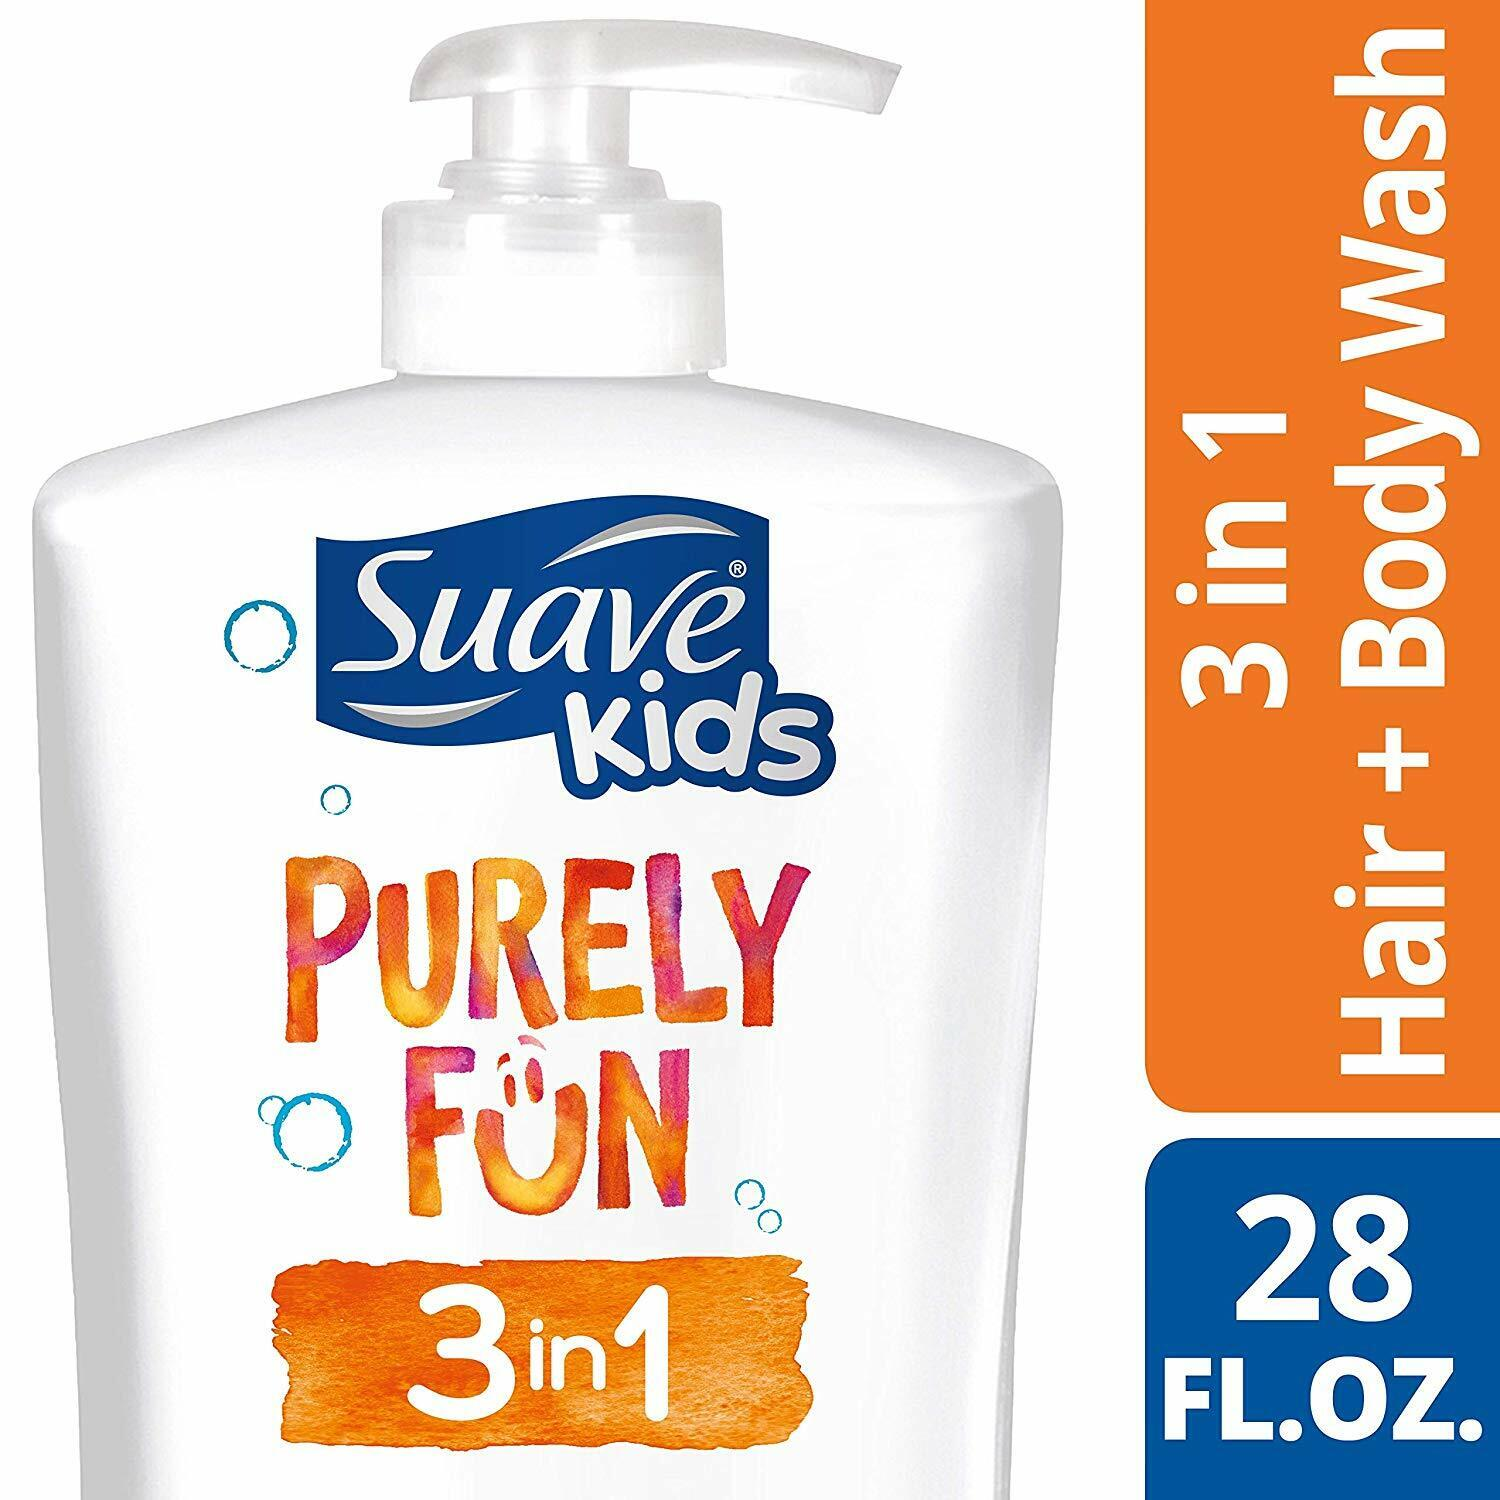 purely fun 3in1 shampoo conditioner body wash